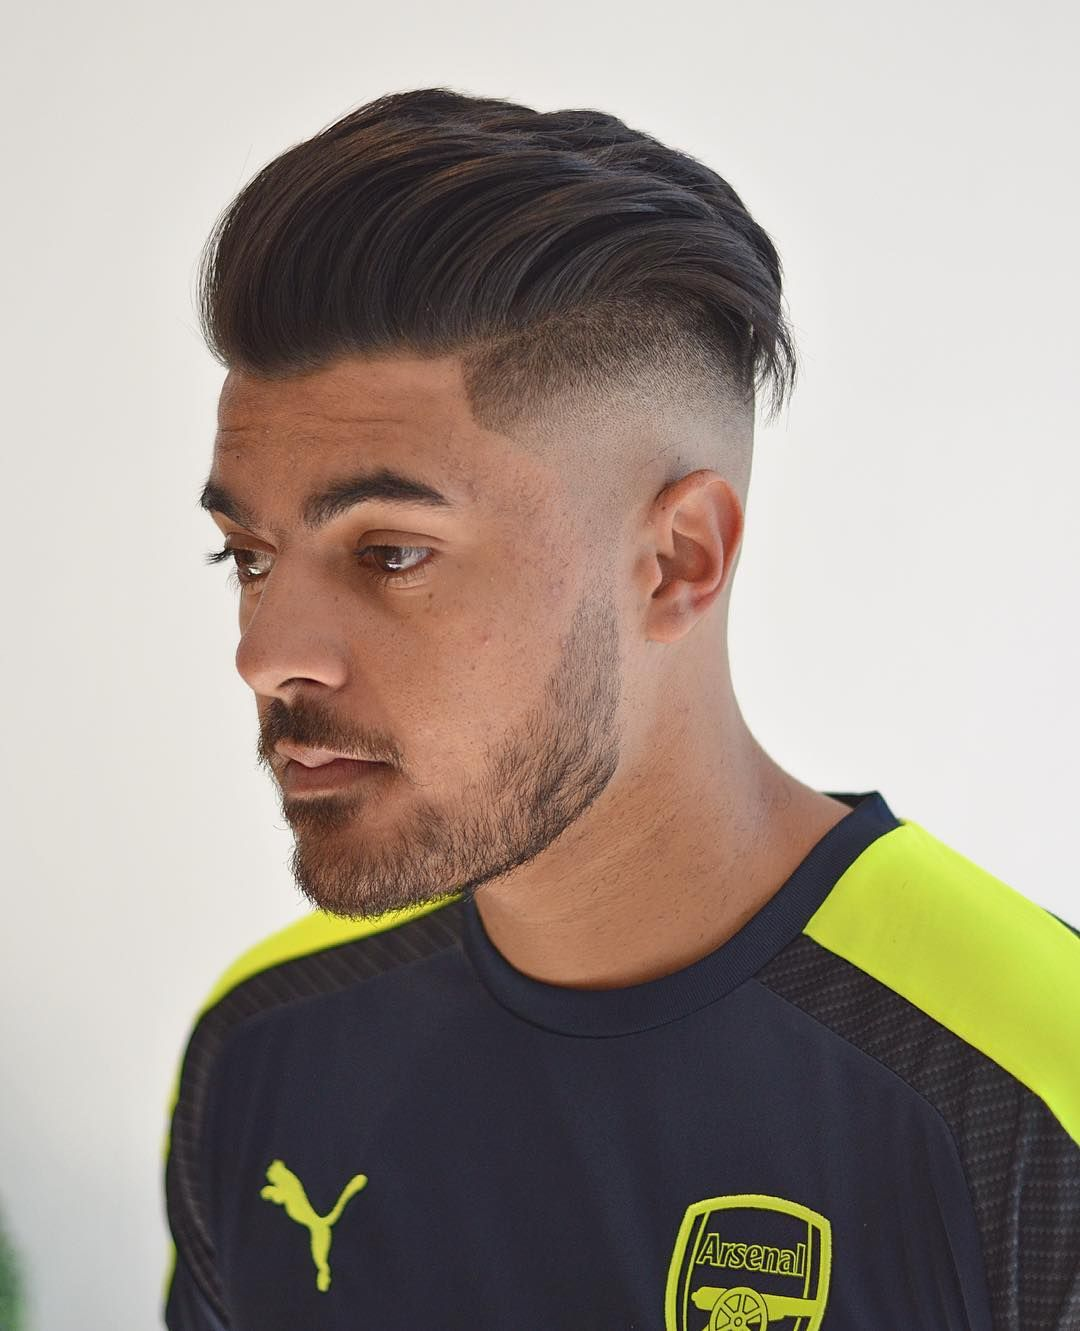 Top 25 Soccer Player Haircuts 2020 Guide Soccer Hair Ronaldo Hair Soccer Player Hairstyles